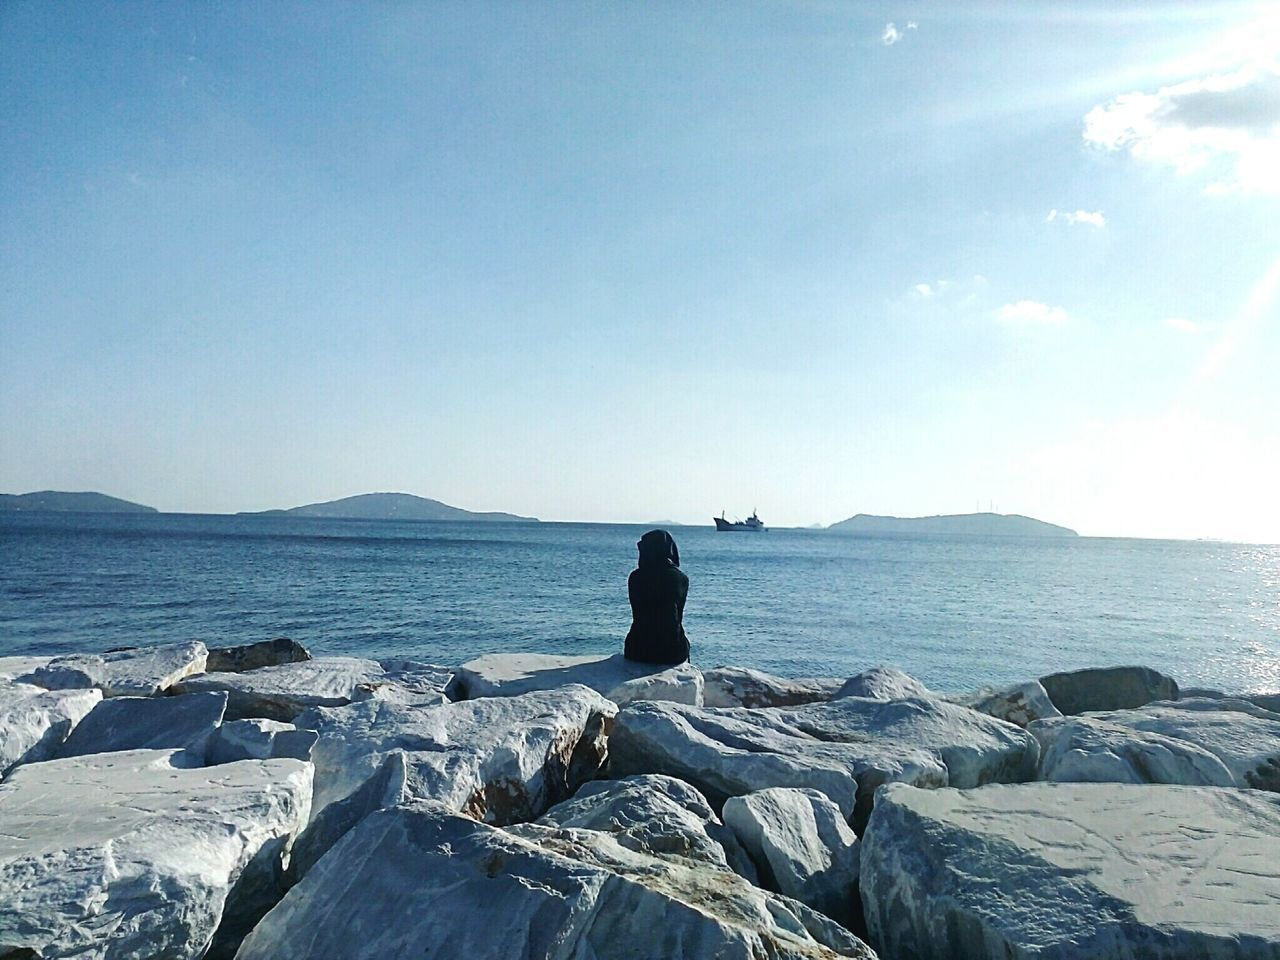 View is beautiful, so is she. 💕 Relaxing Check This Out Enjoying Life Hanging Out Sky And Sea Turkey Istanbul Turkey Sea And Sky Hidden Gems  ıstanbul Sea Sea View Seaside Clouds And Sky Sky New Talent New Talent This Week Eyeemphoto My Year My View waiting game Sommergefühle EyeEm Selects